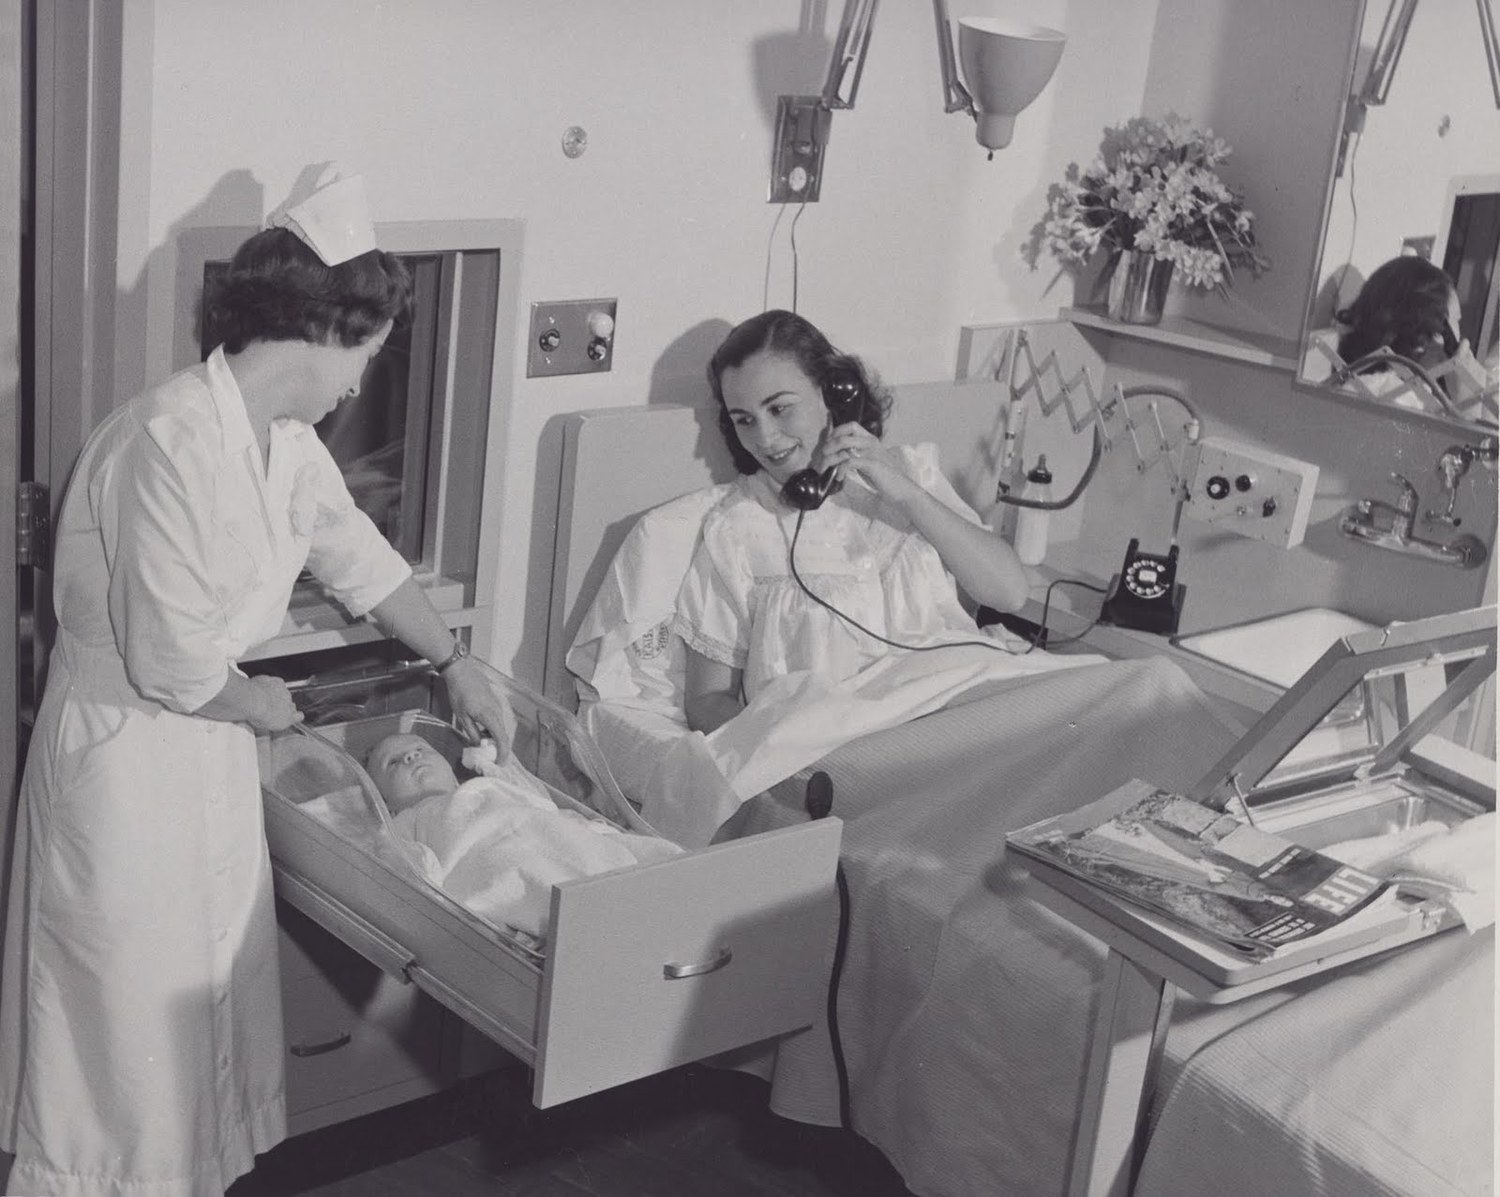 Here we see how in the olden days babies used to love hanging out inside hospital drawers and some lady holding an arcane, unidentifiable device. Photo Credit: Kaiser Permanente